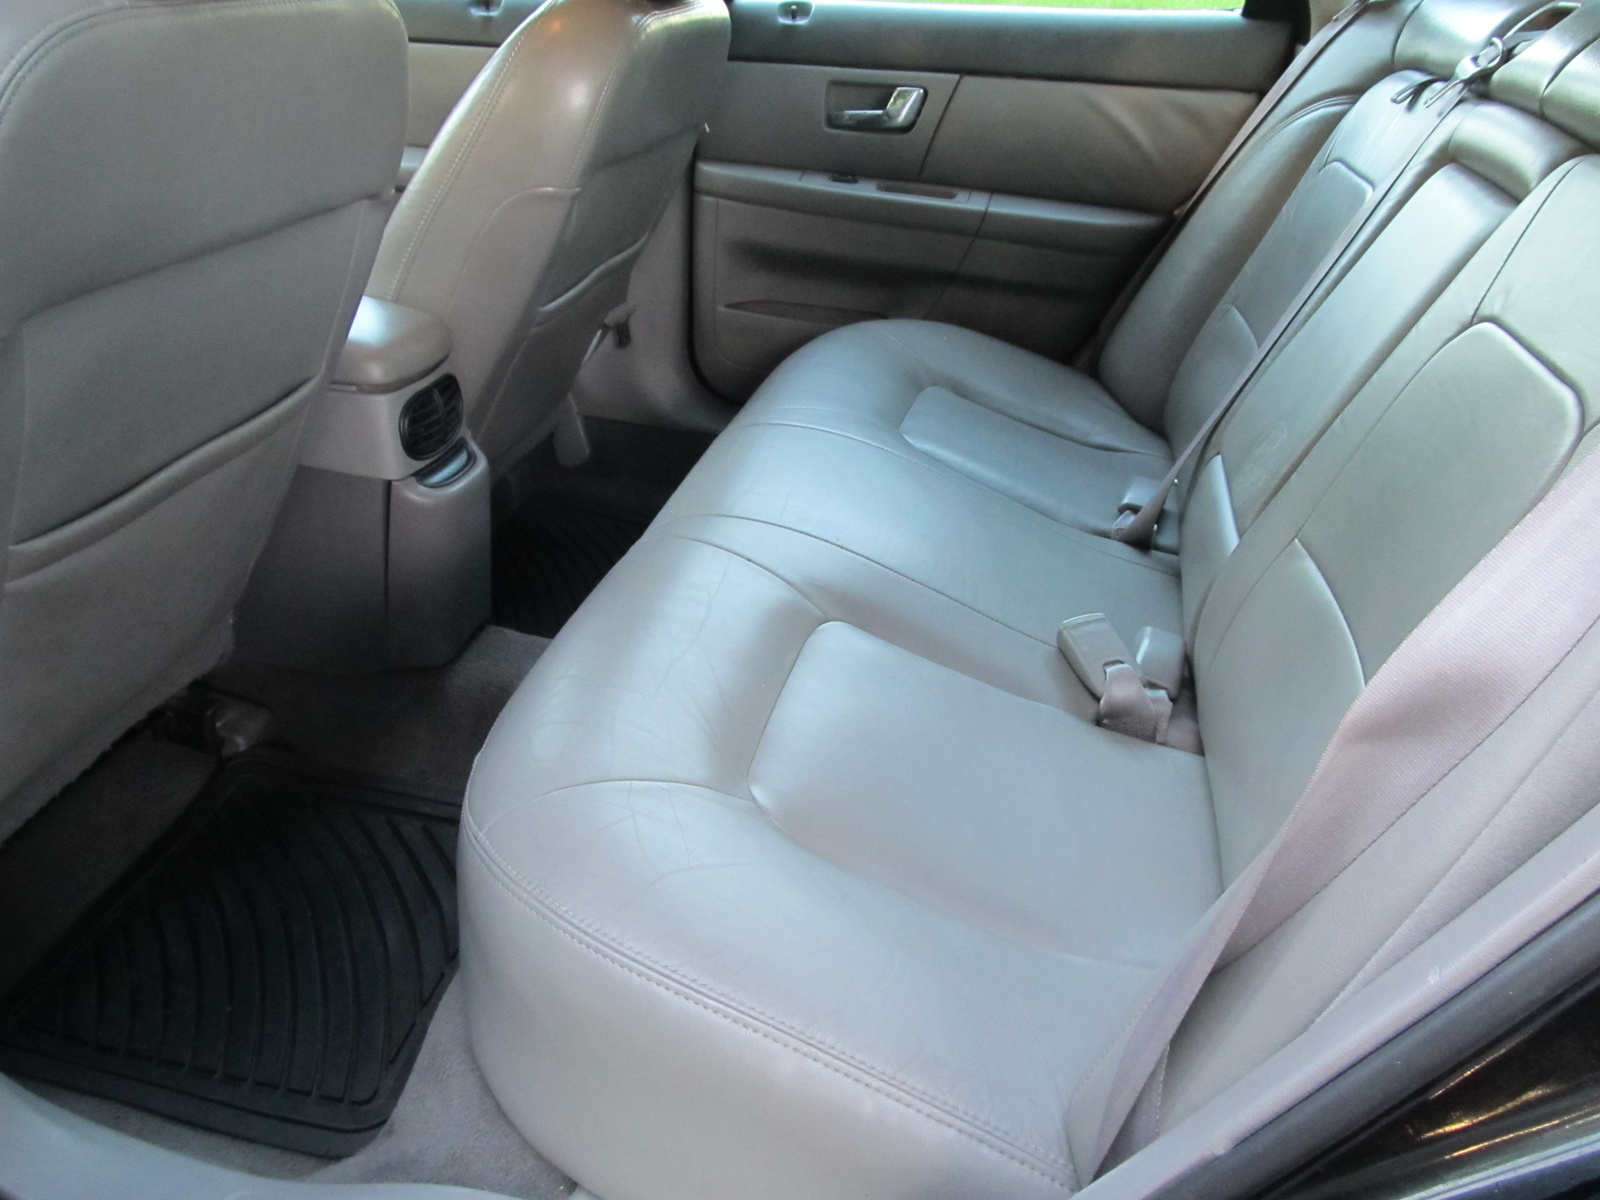 2001 Ford Taurus Interior Pictures Cargurus